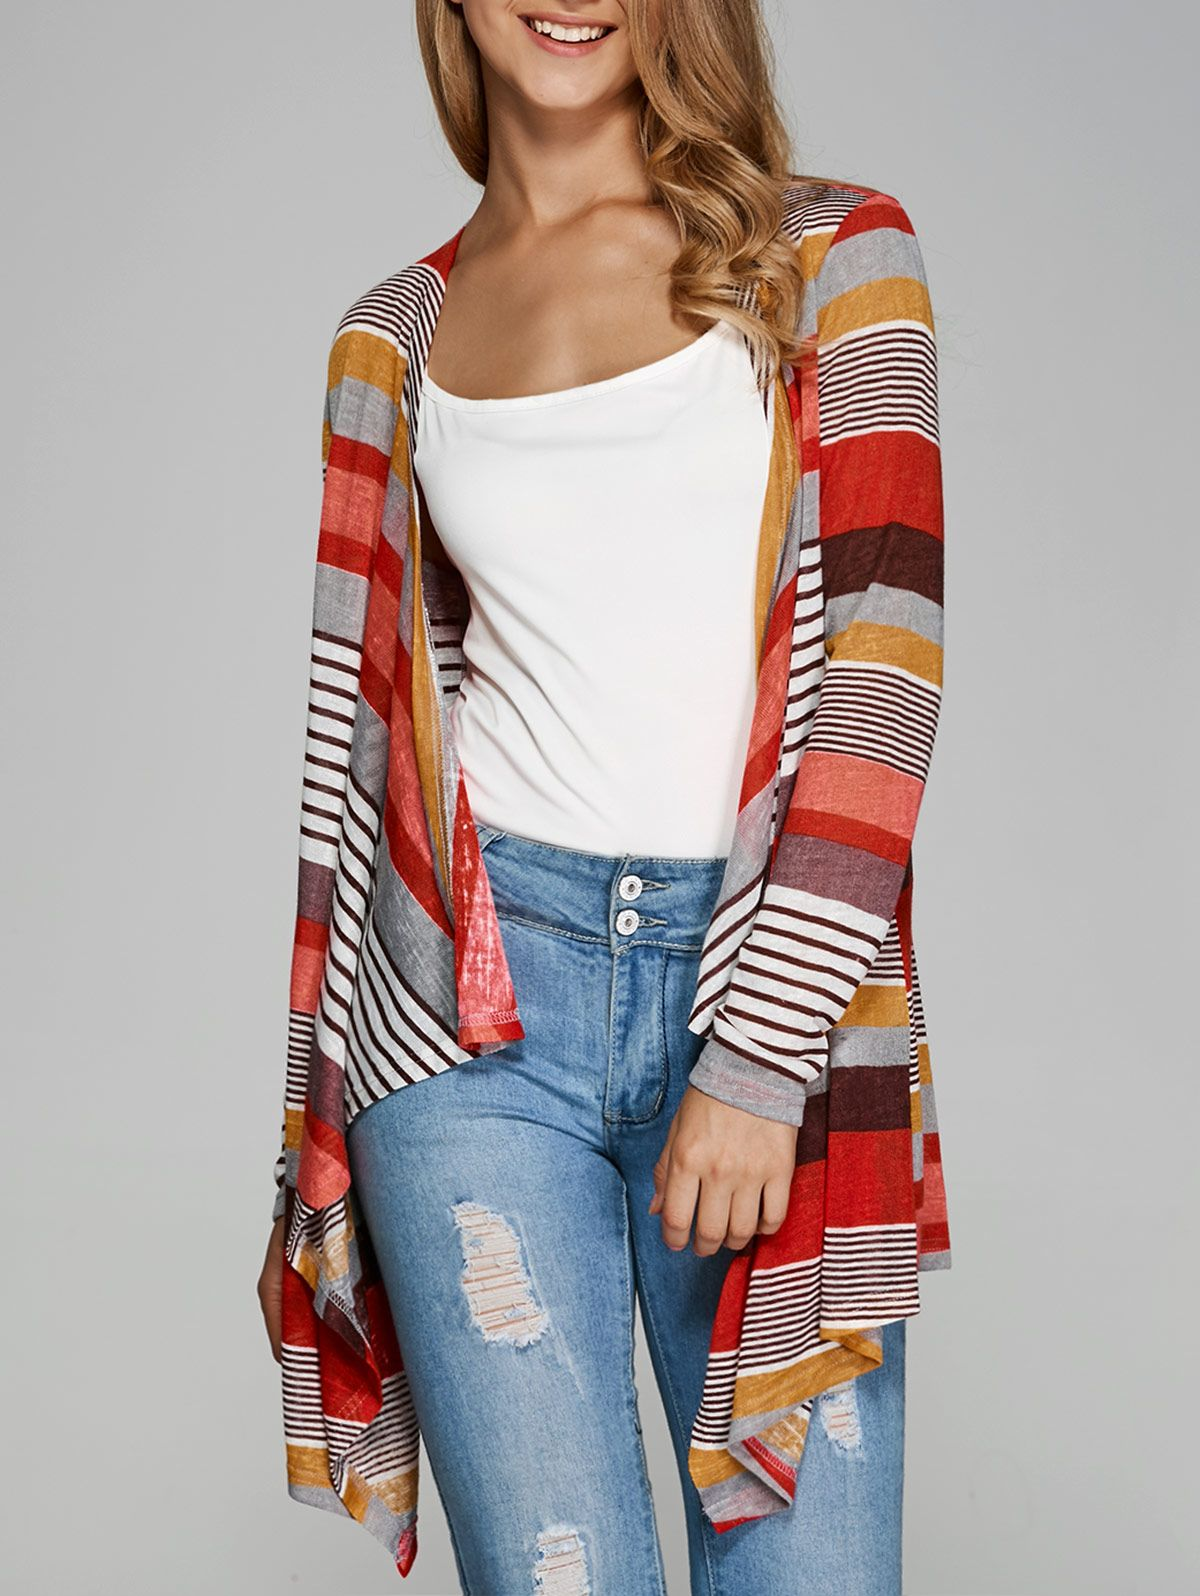 Colorful Striped Asymmetrical Cardigan | Wholesale products and ...